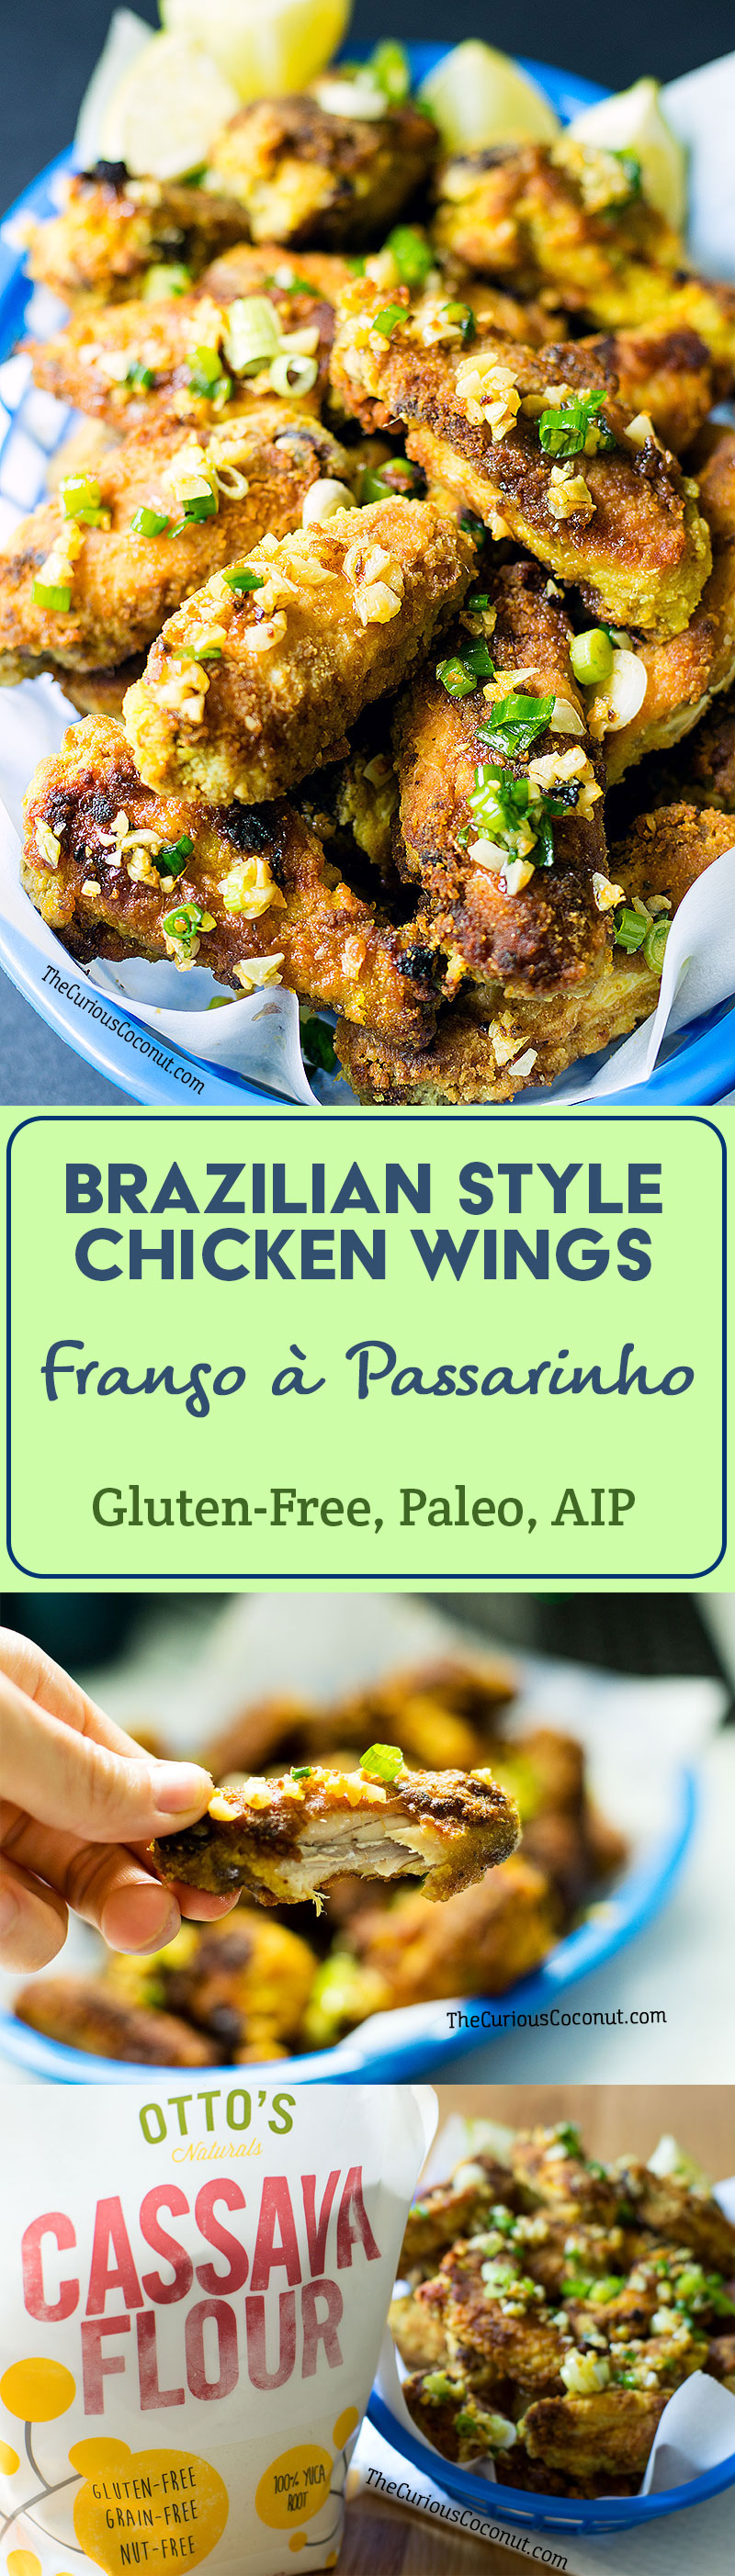 Brazilian Style Chicken Wings with Crispy Garlic - Frango a Passarinho (Paleo, Gluten-Free, AIP option) // TheCuriousCoconut.com